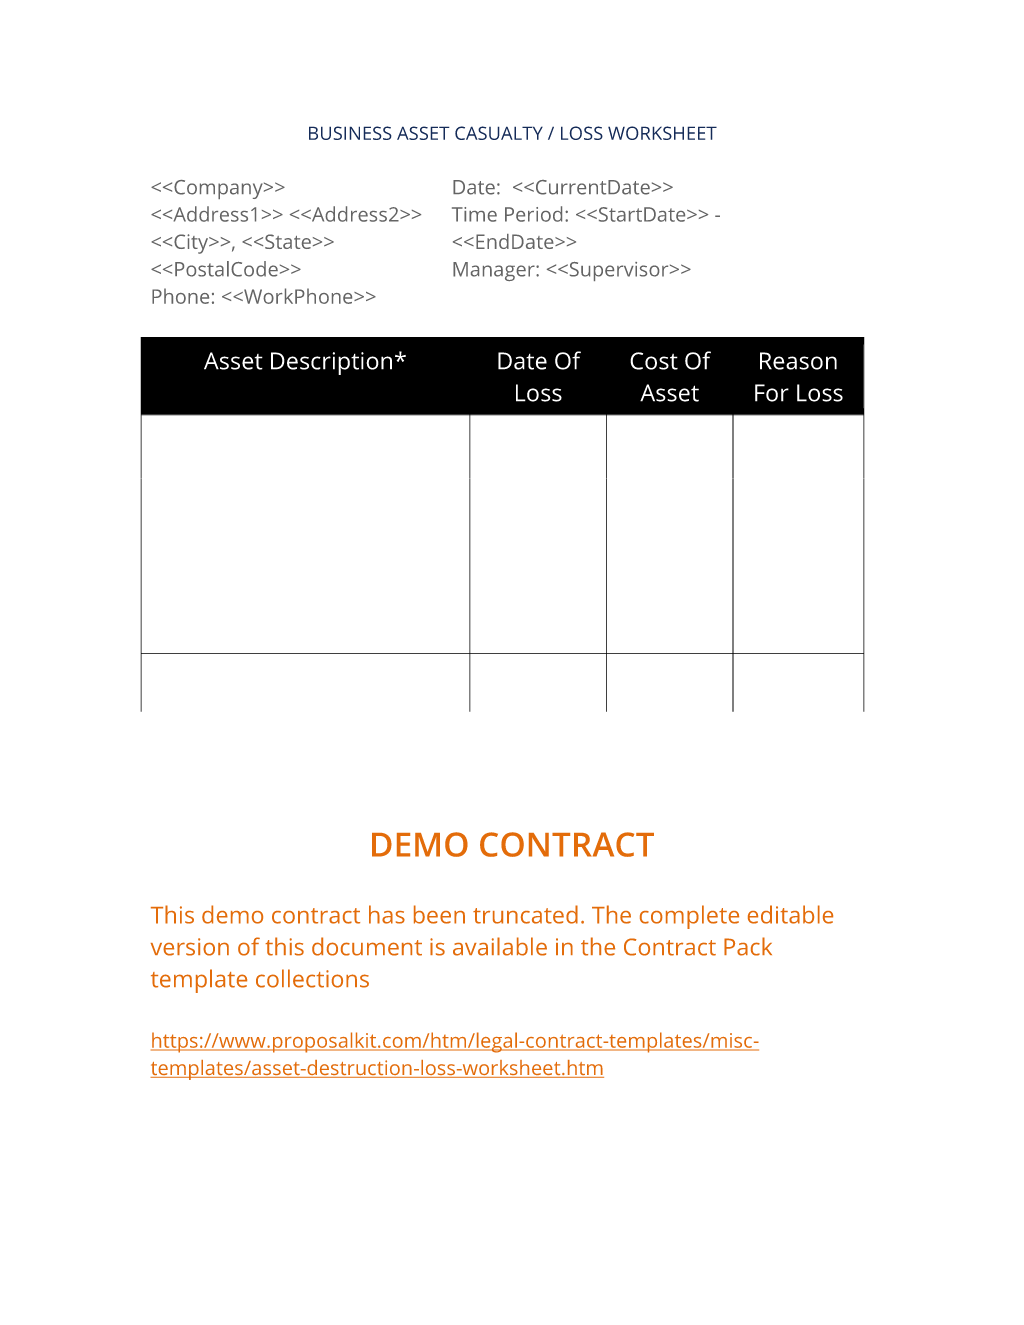 How To Write Your Own Asset Destruction Loss Worksheet